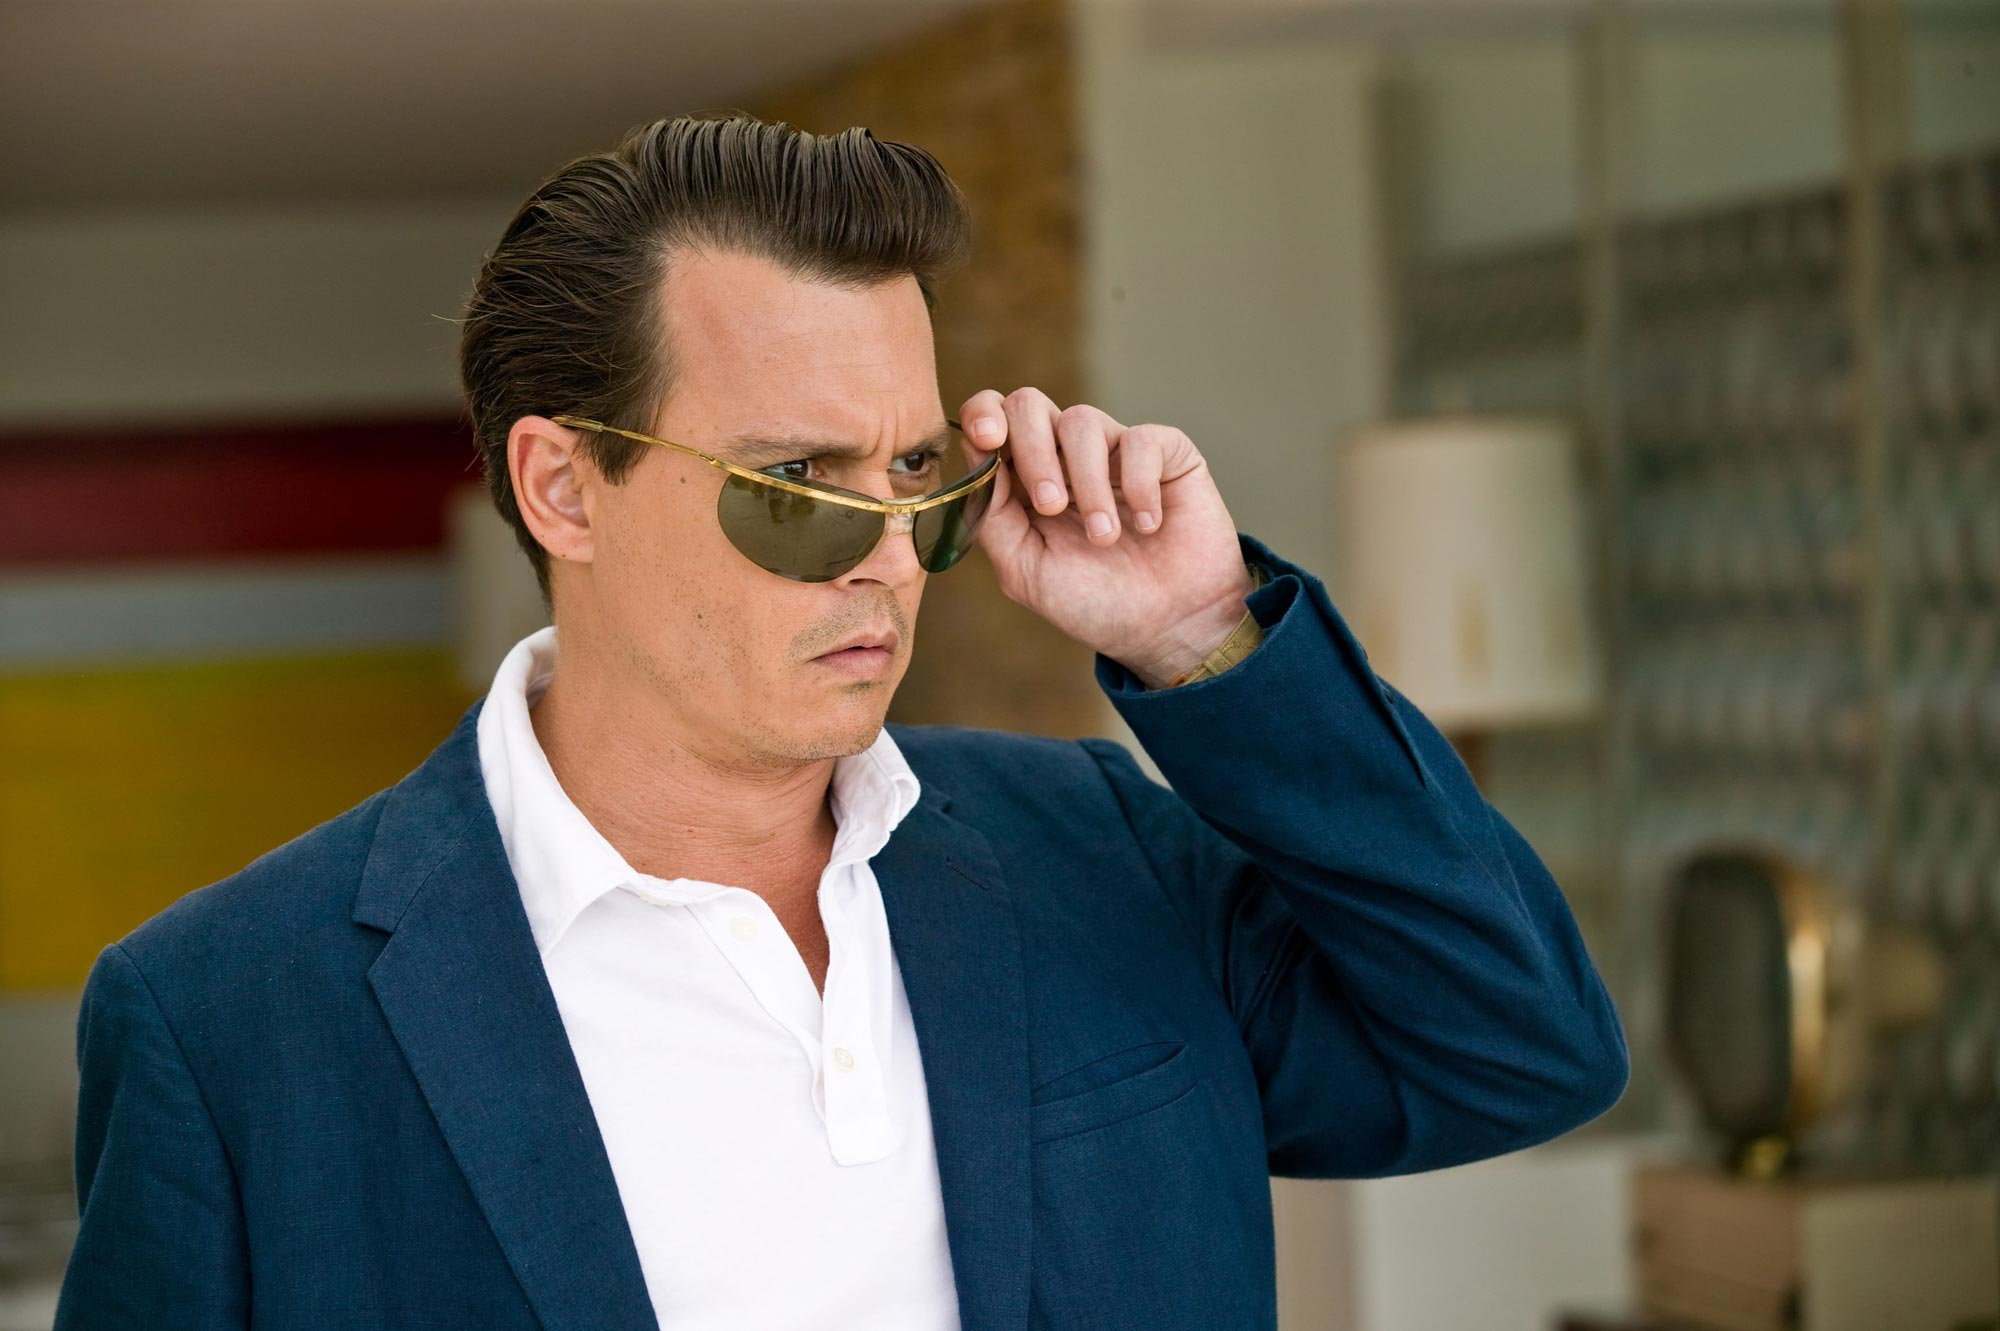 Rum Diary Photo #21, Johnny Depp